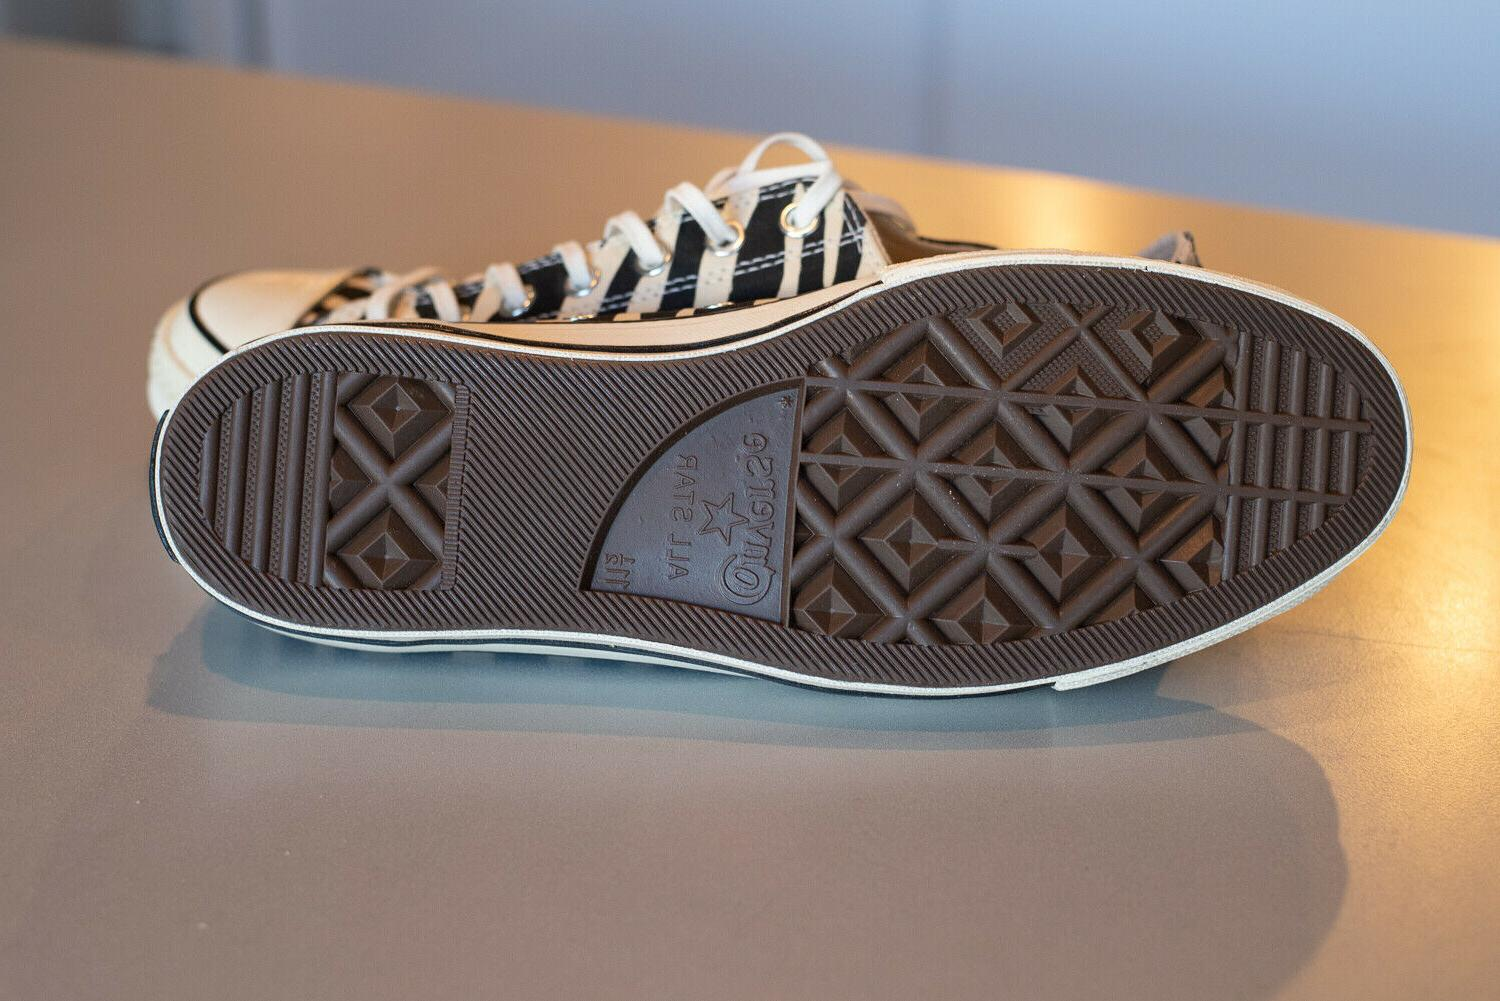 Converse Chuck Star OX 11.5 Low Top Sneakers